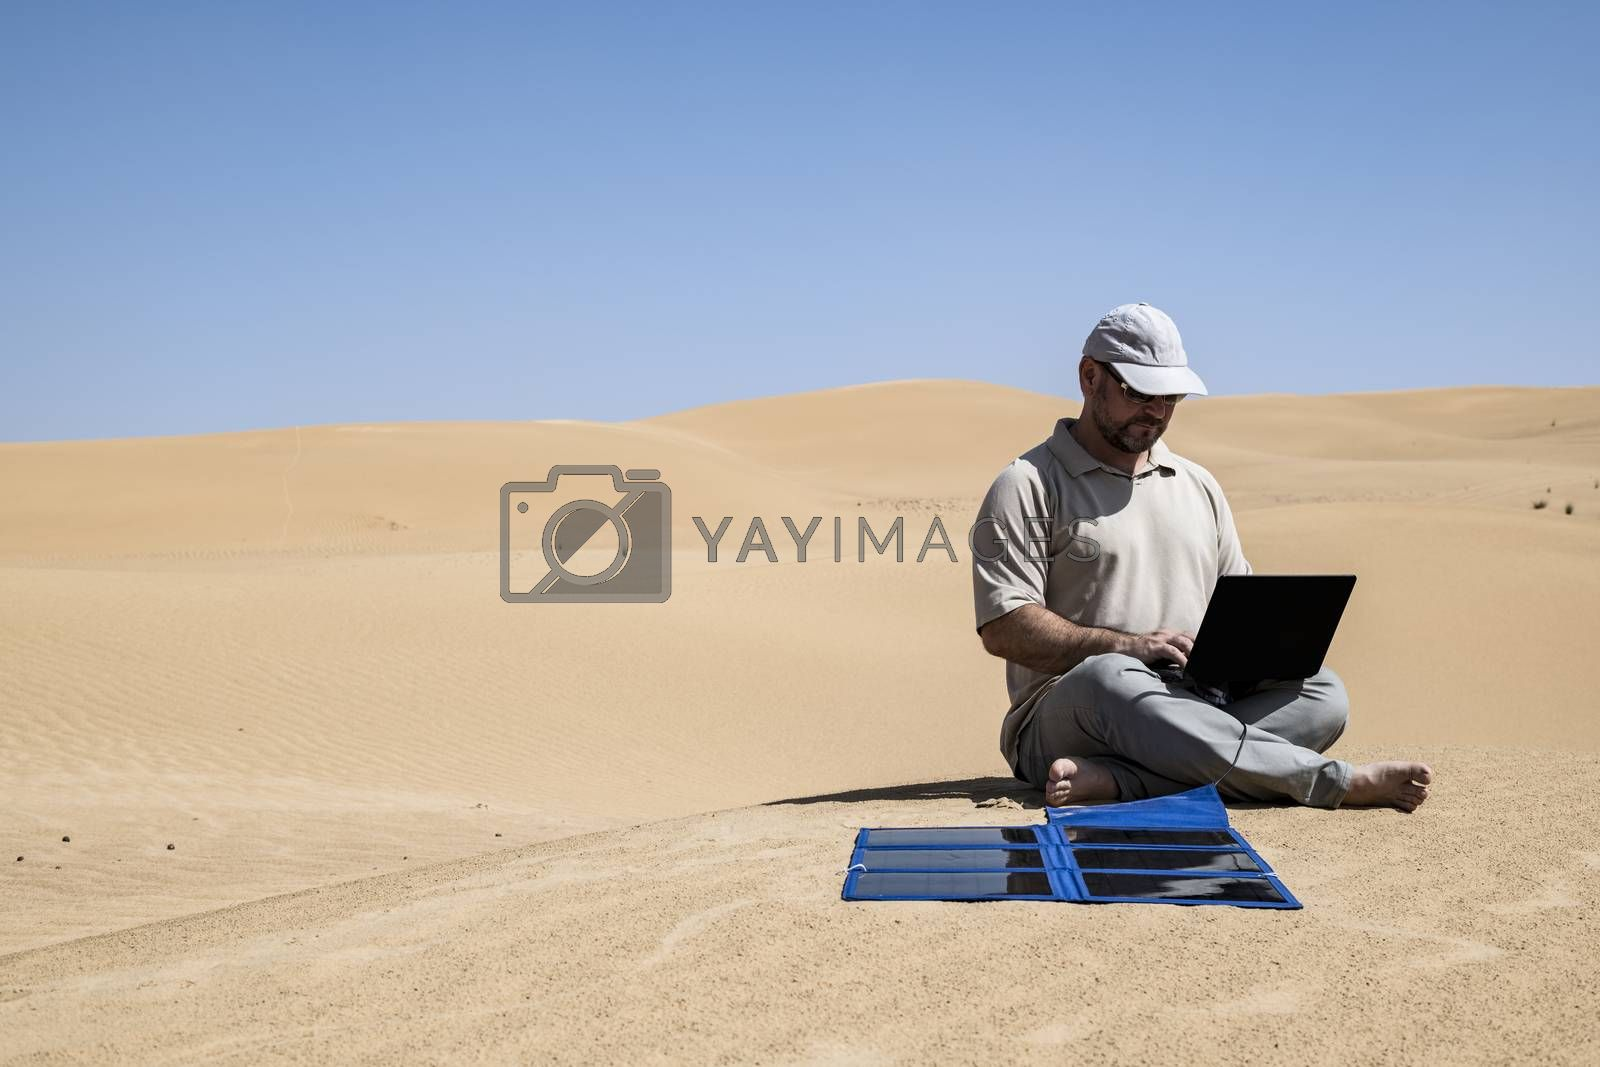 Adult (man) using his laptop in the Middle of the dunes by clear skies and using portable flexible solar panels and charger